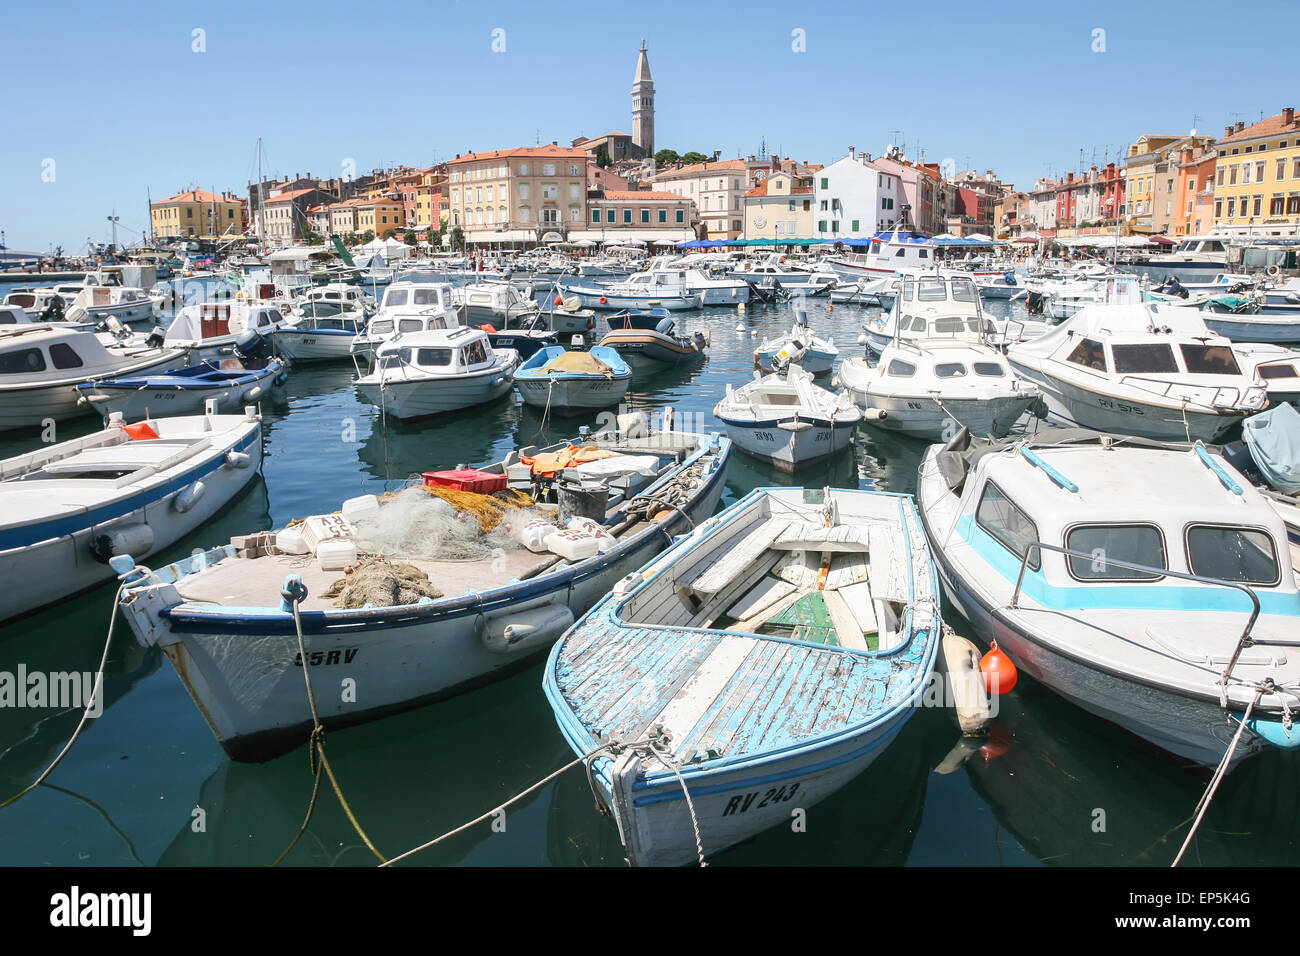 A large group of boats anchored in the marina with a view of the city promenade and the old city core in Rovinj, - Stock Image